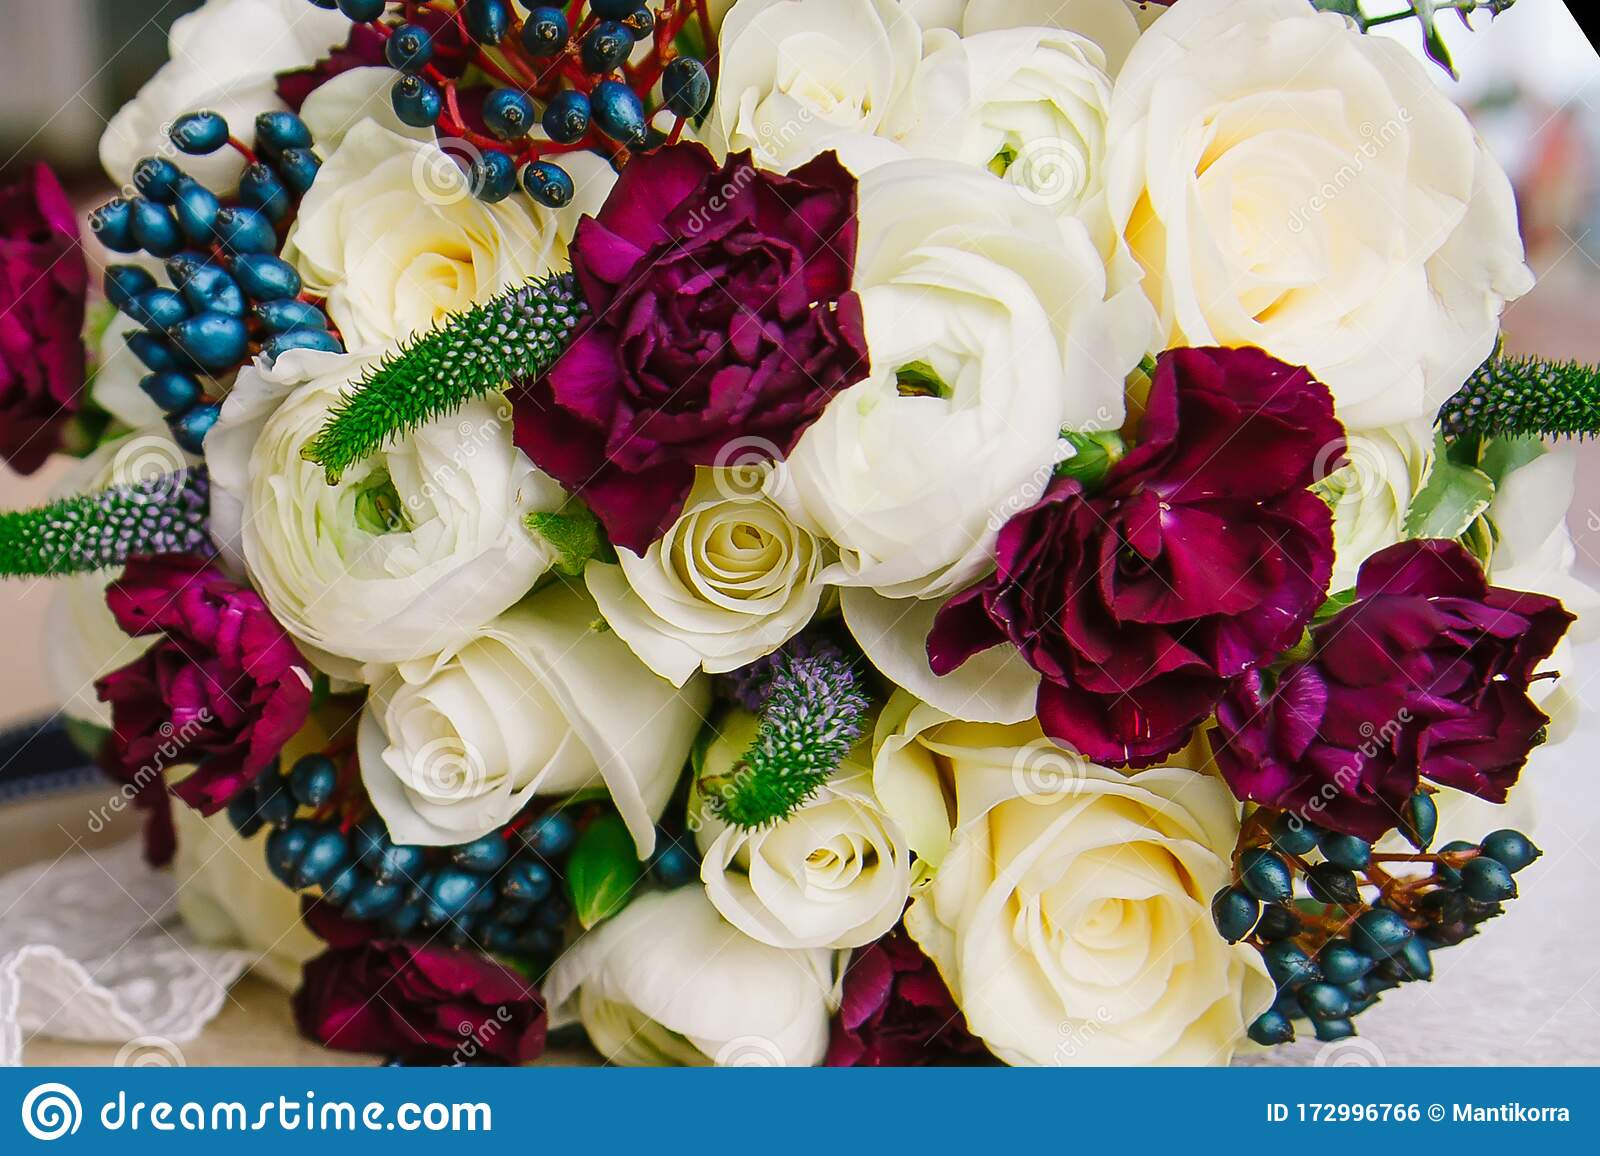 Wedding Bouquet Of Flowers From Roses And Peonies Stock Photo Image Of Ceremony Closeup 172996766